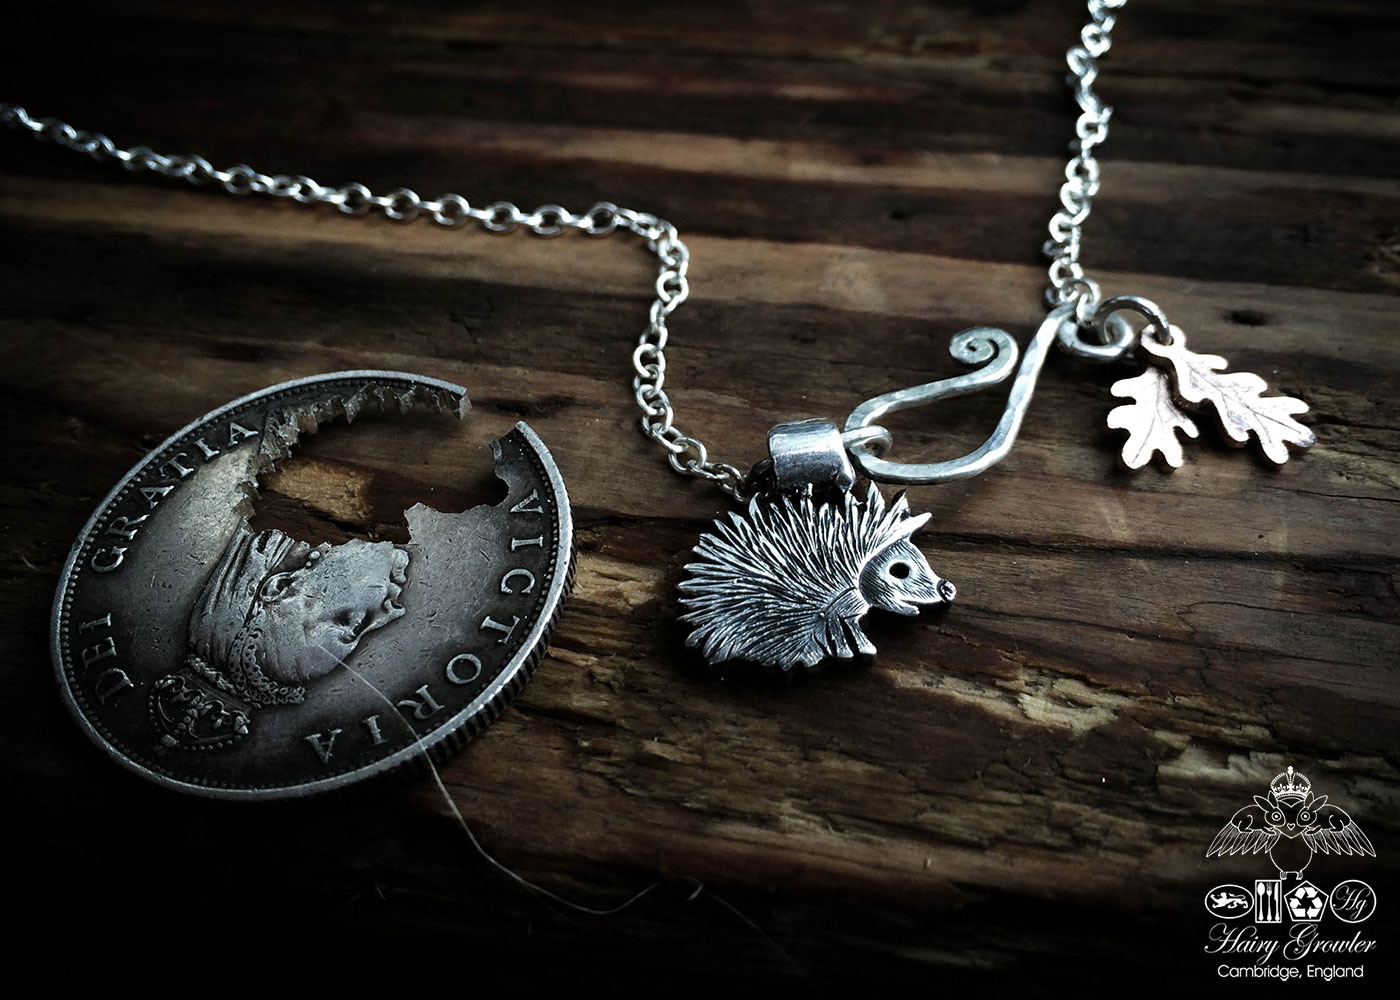 handmade and recycled silver coins hedgehog charm for a tree sculpture, necklace or bracelet